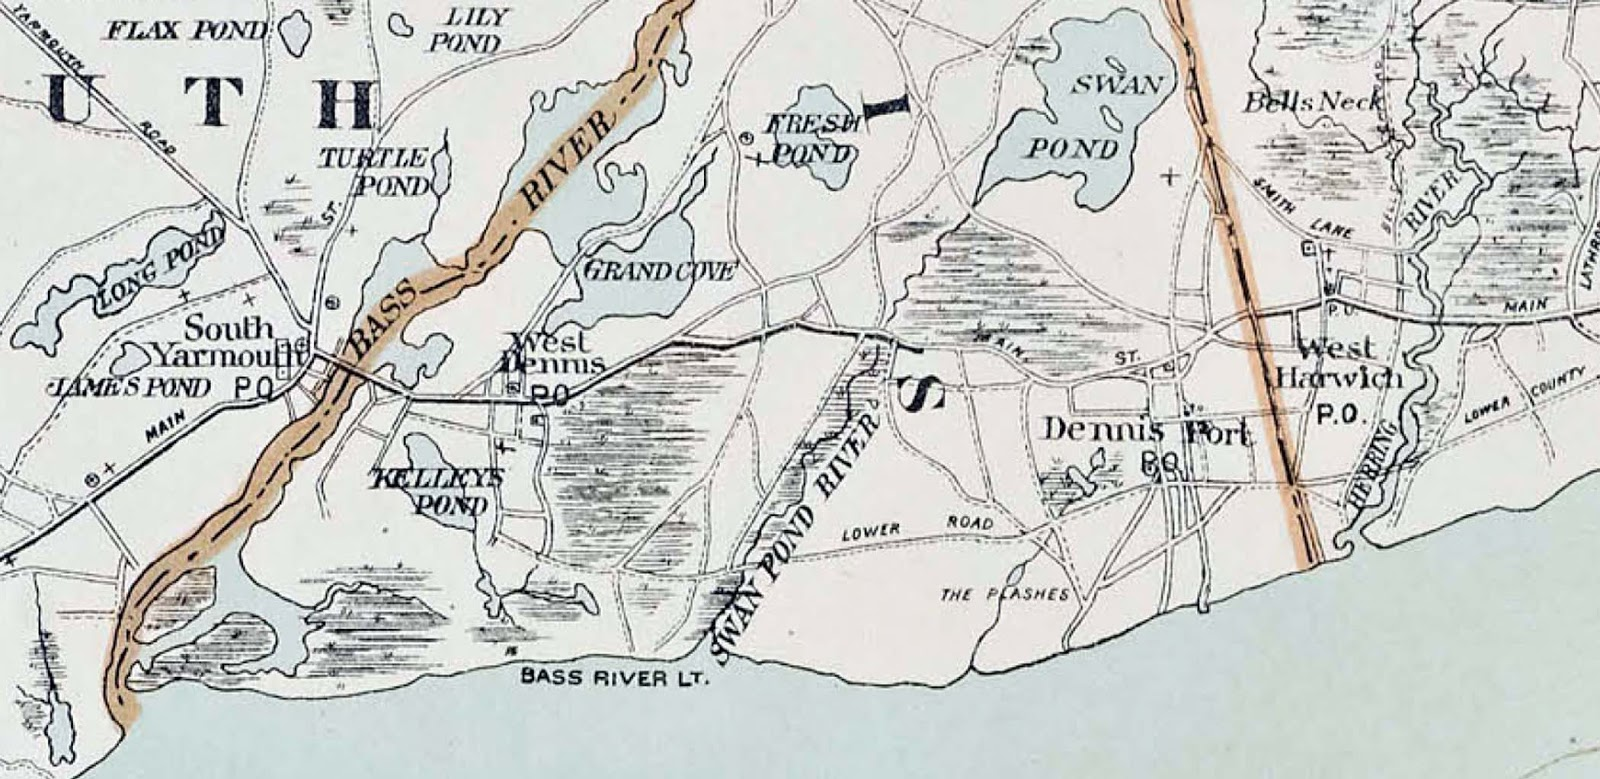 a look at this 1922 map of dennisport shows us that as compared with the roads of today